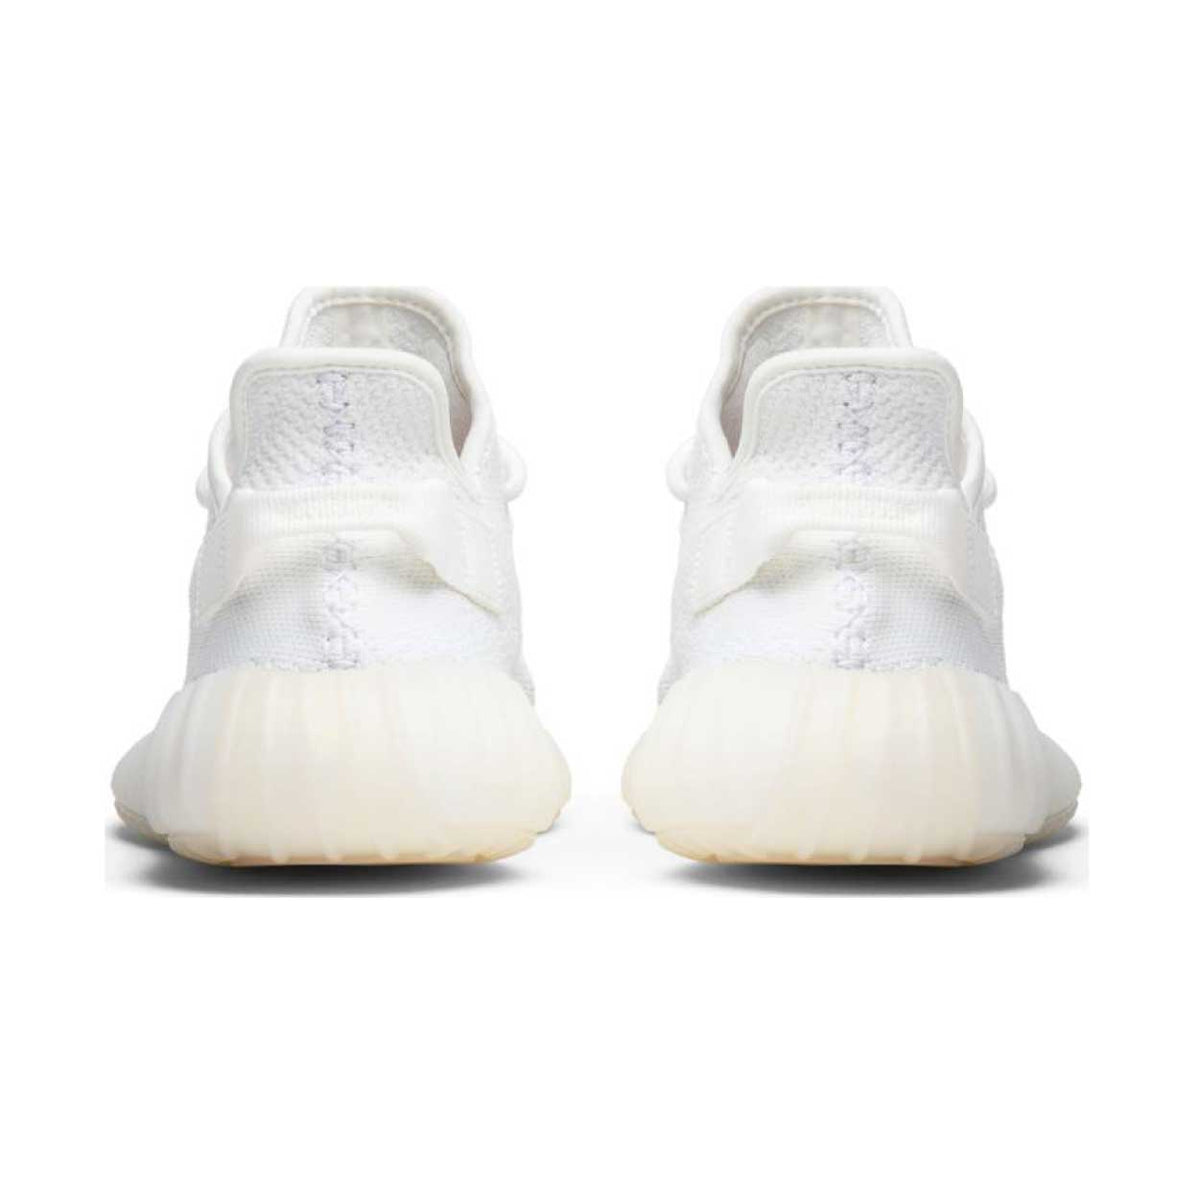 cheap for discount 0dc92 d8ddd ADIDAS YEEZY BOOST 350 V2  CREAM WHITE   TRIPLE WHITE  – Vaince Sneaker Shop